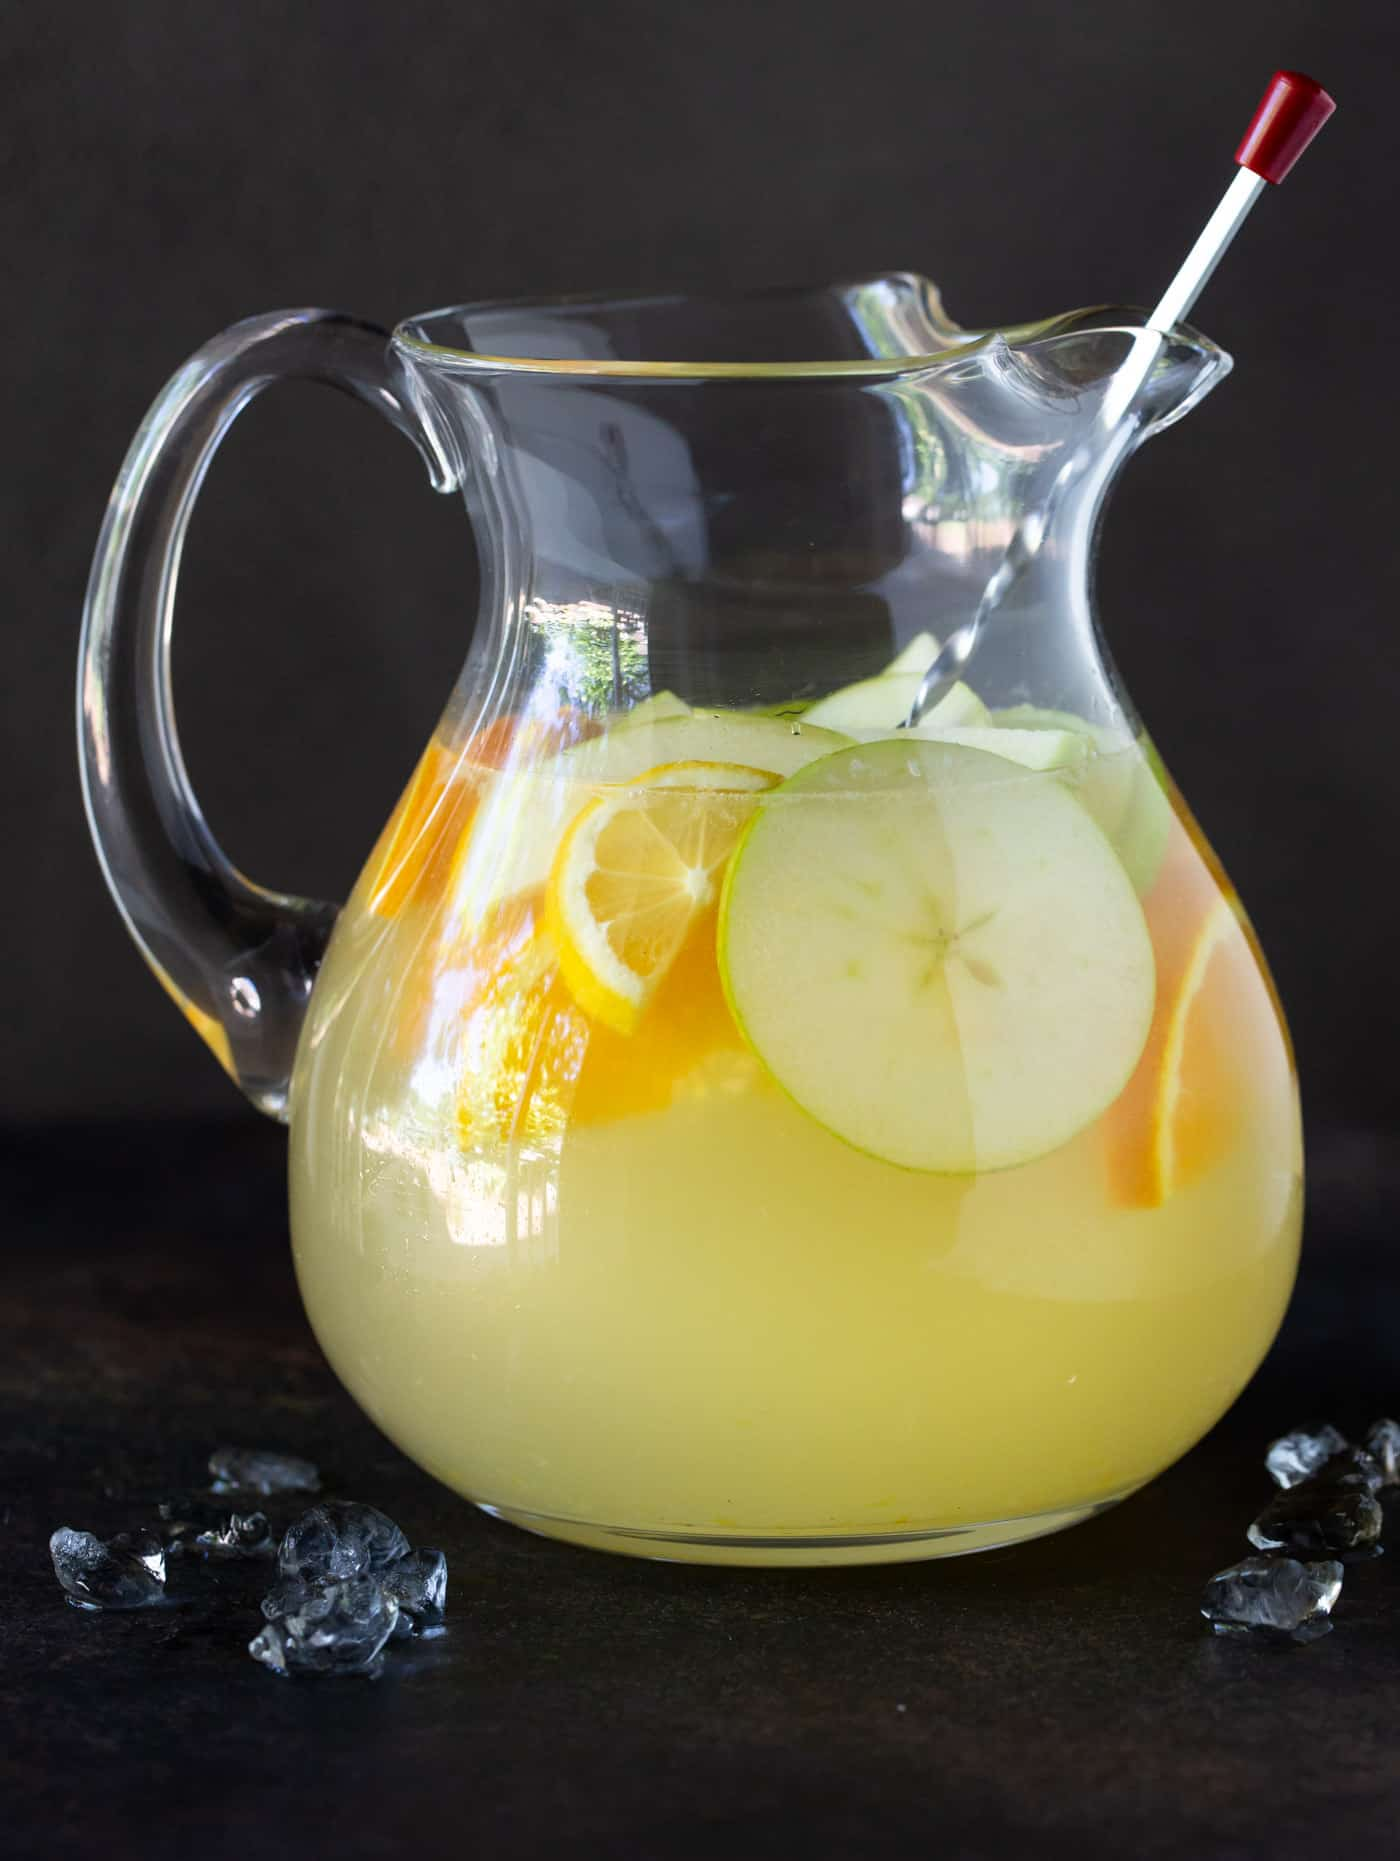 Pitcher of Sangria Lemonade on a dark background with ice scattered in foreground.